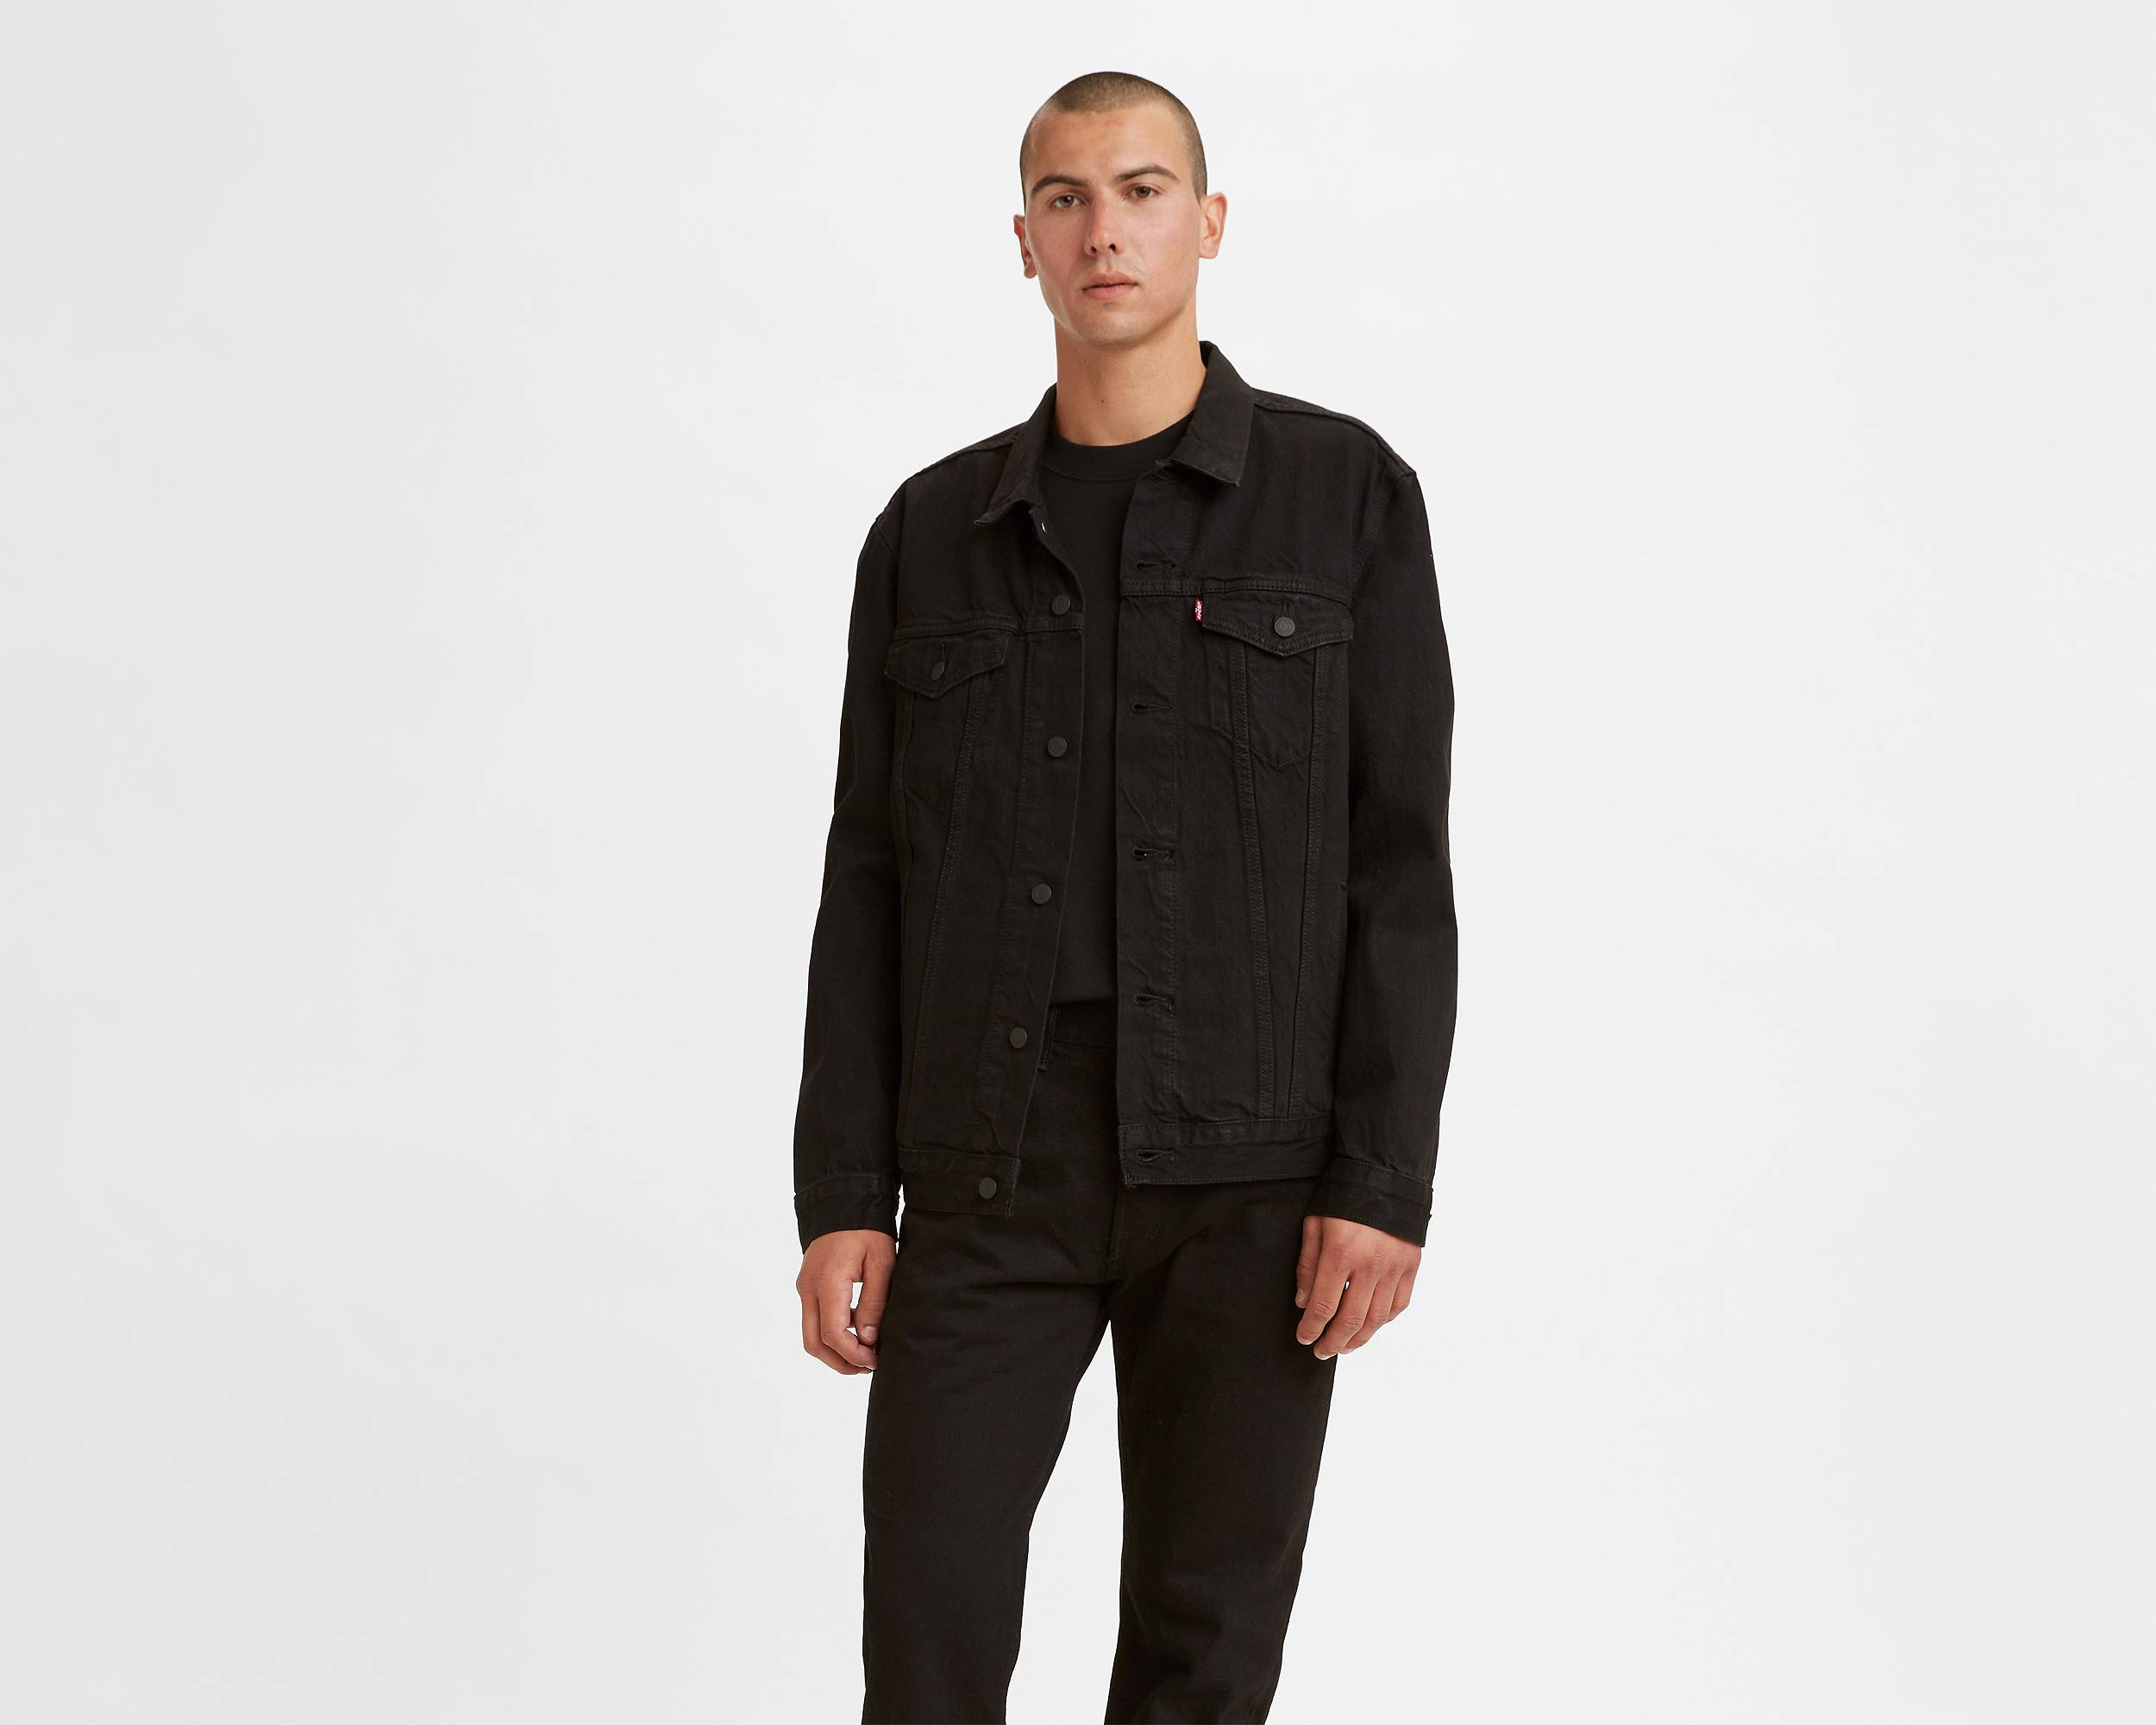 The Trucker Jacket | Berkman |Levi's® United States (US)